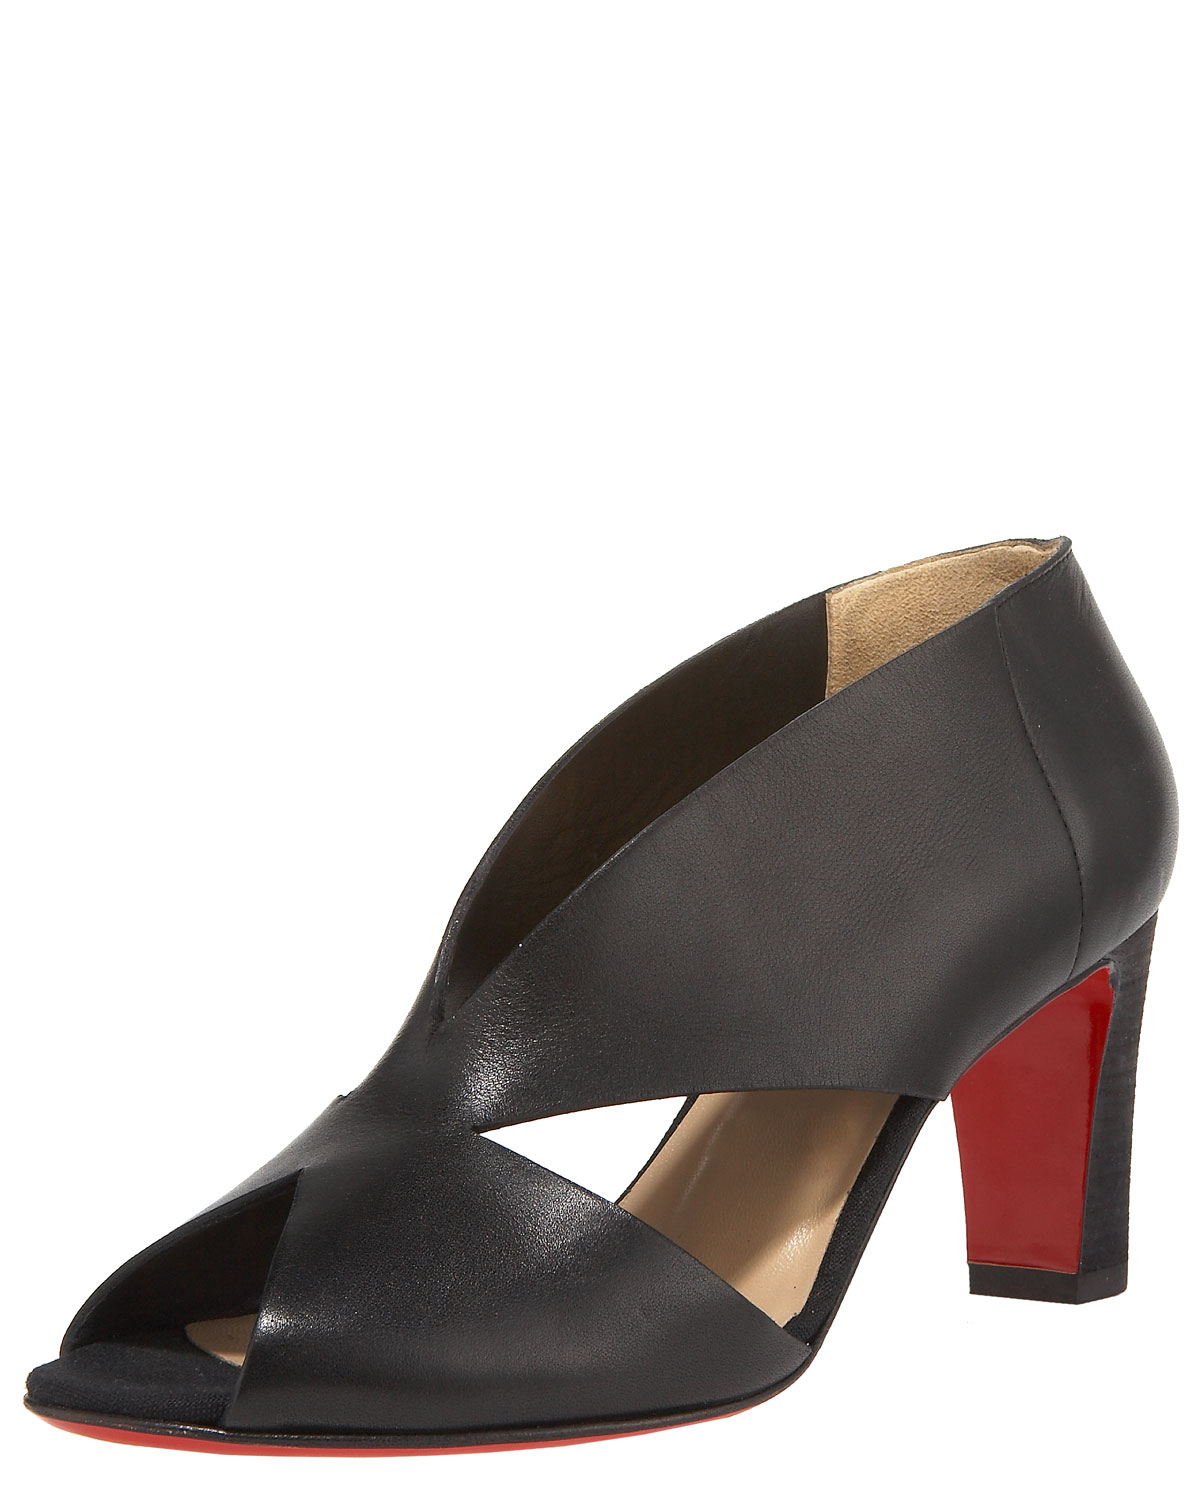 Louboutin Shoes South Africa Prices